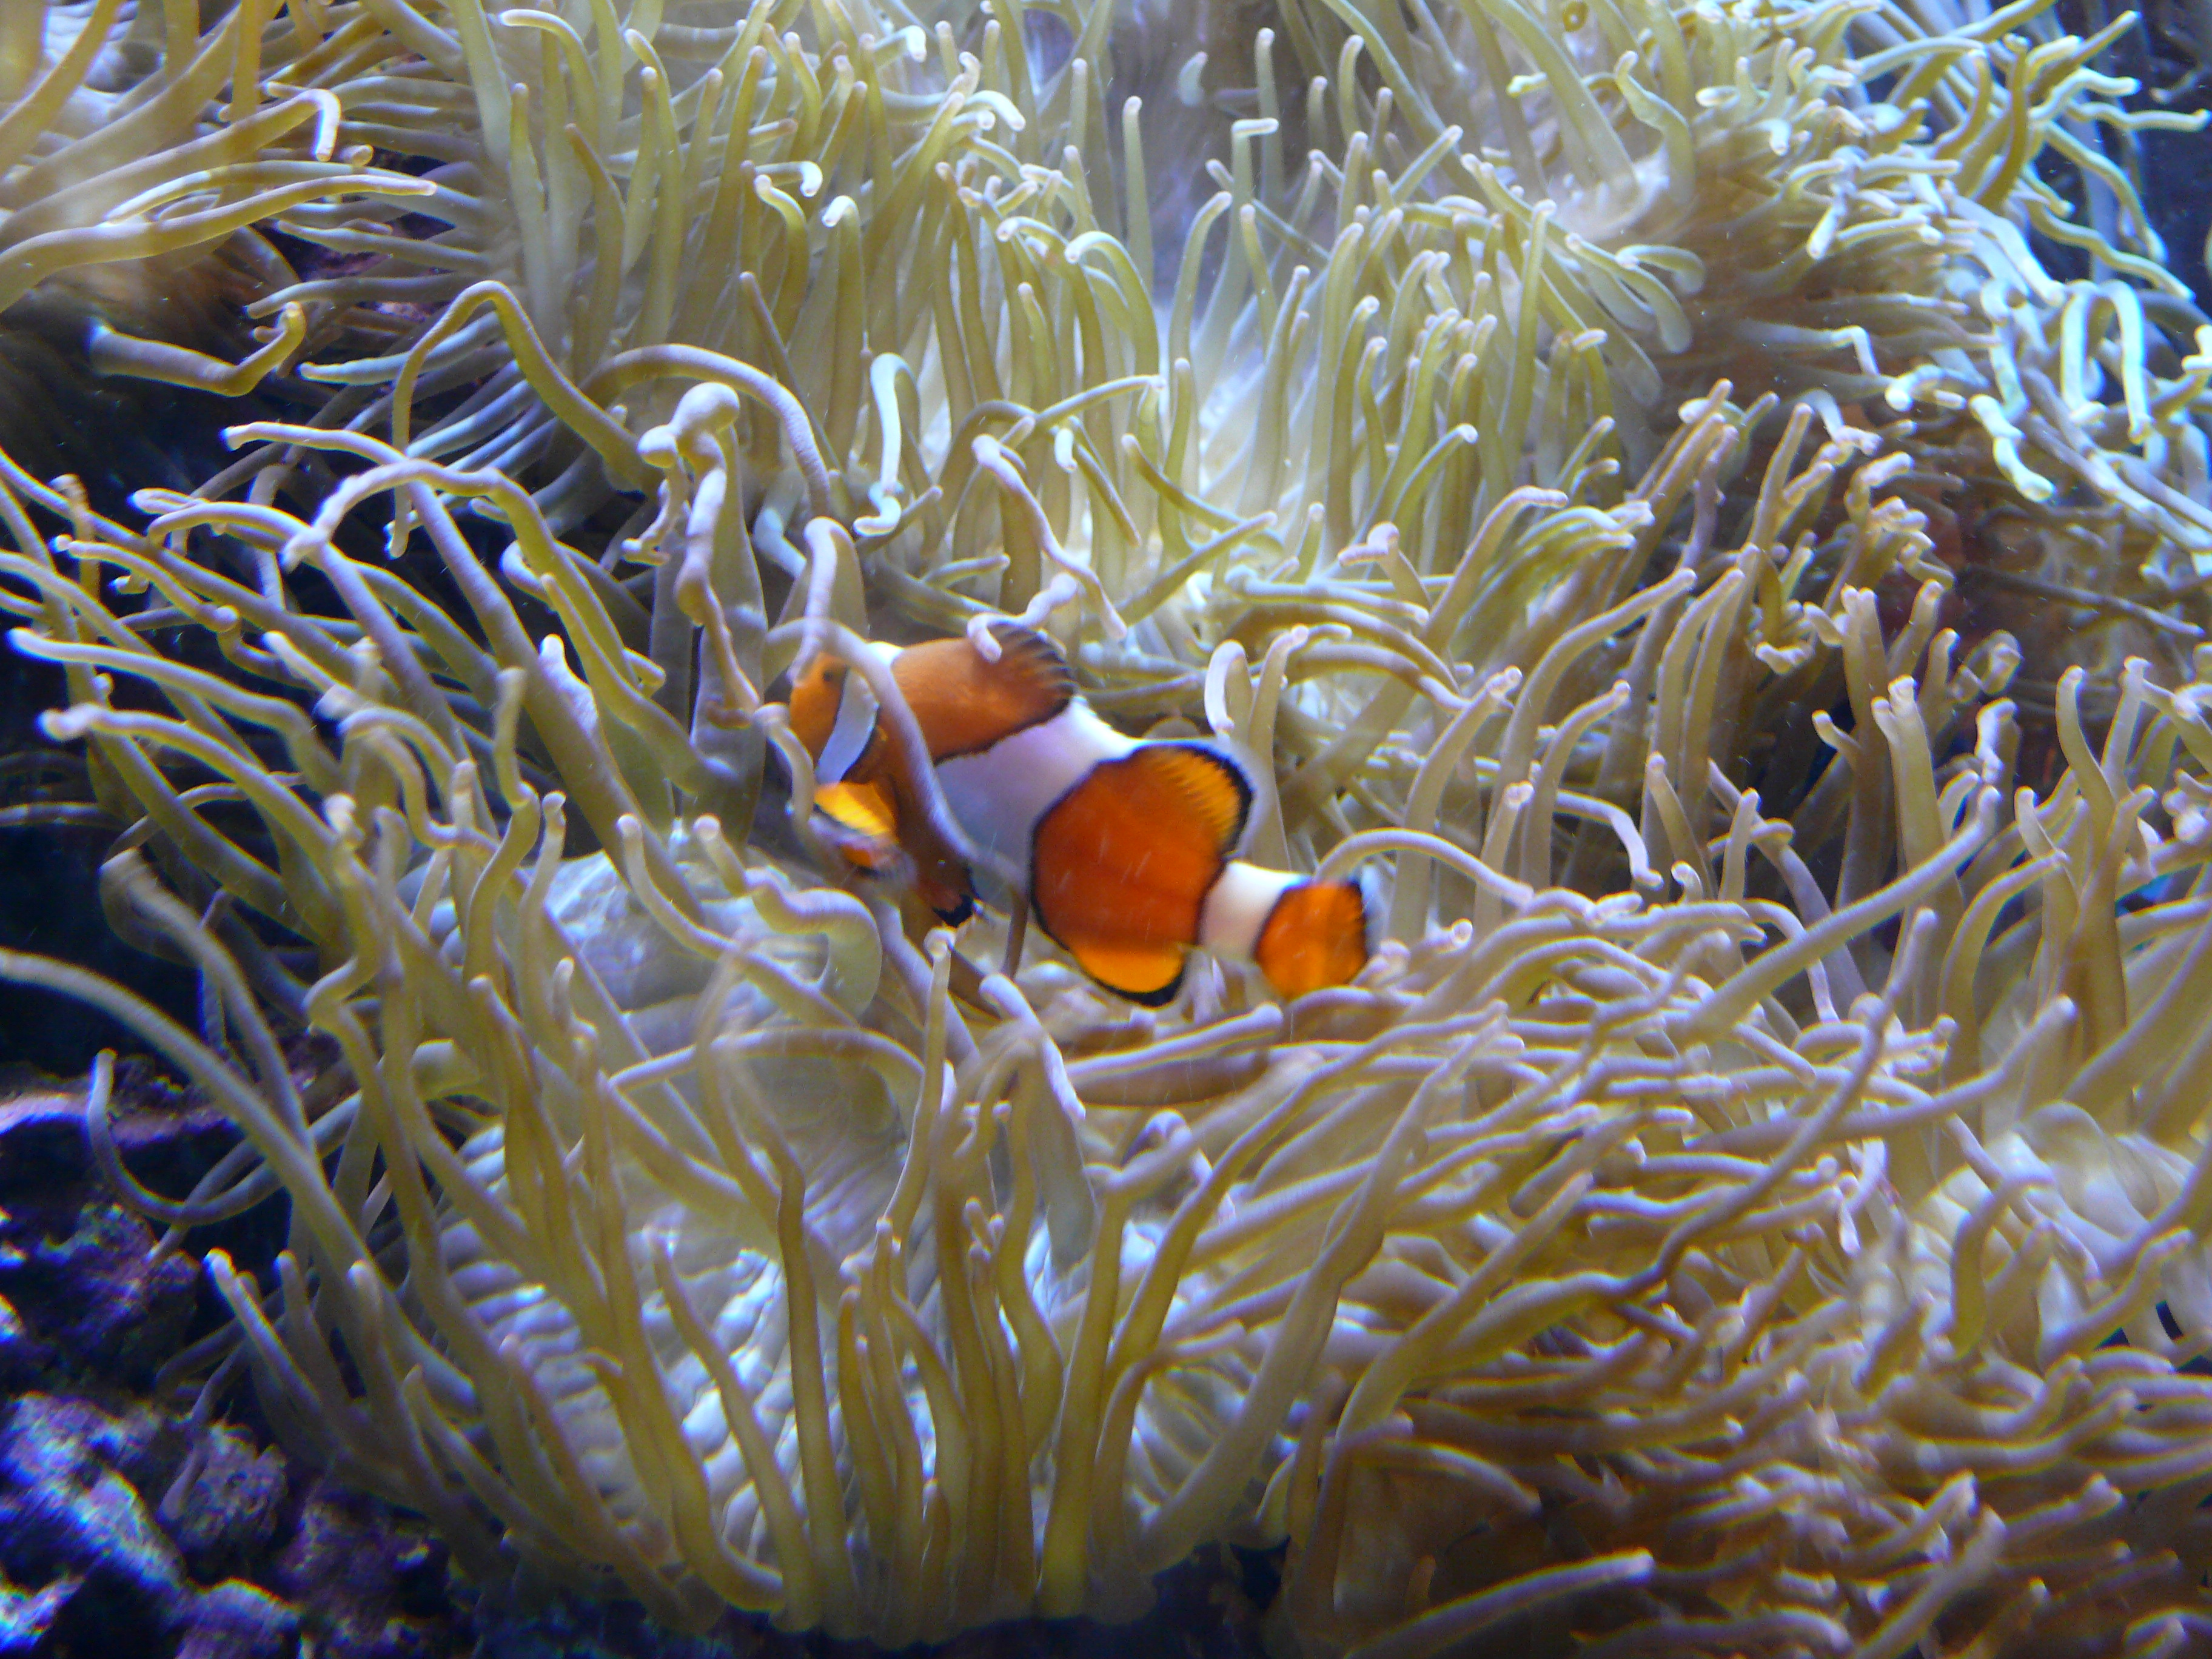 Clownfish and sea anemone for Clown fish facts